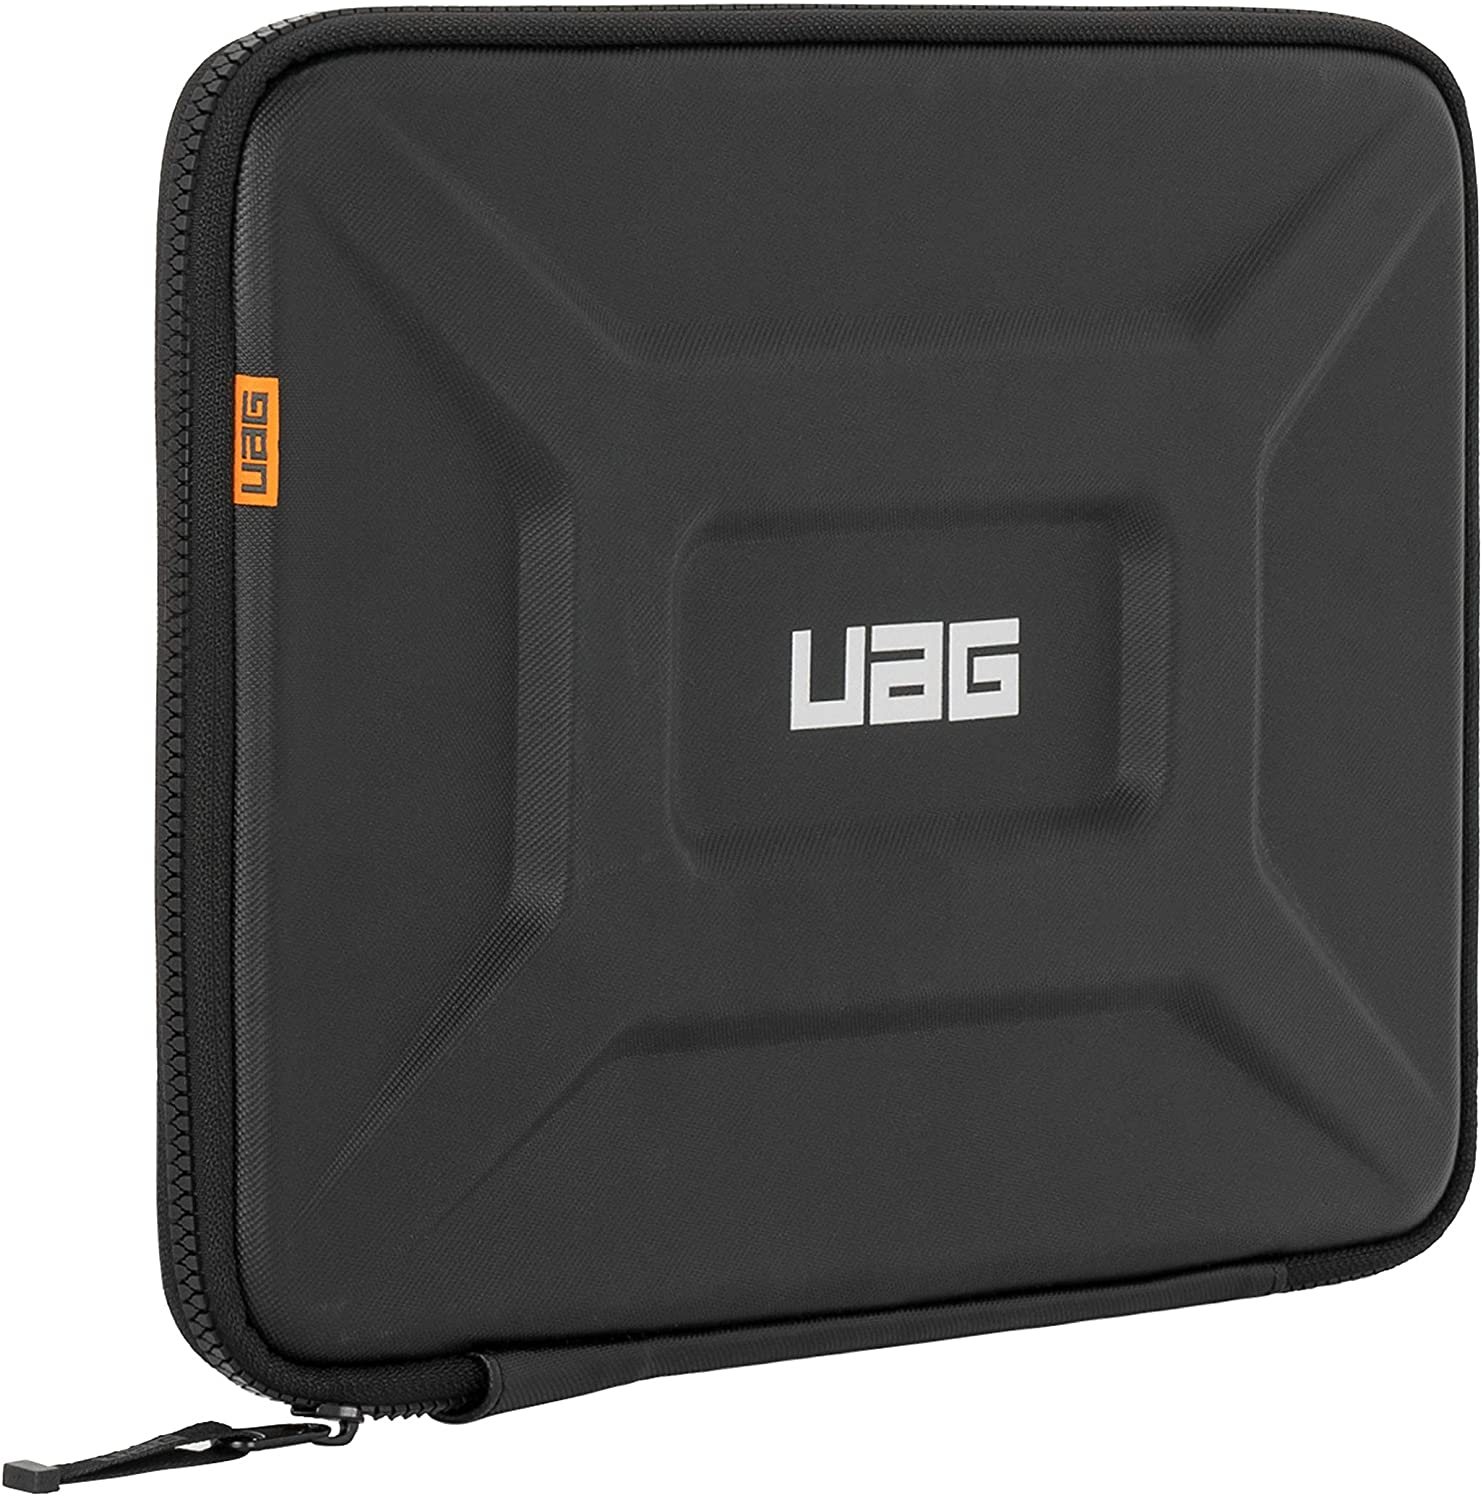 URBAN ARMOR GEAR UAG Medium for Devices Very popular Sleeve Al sold out. 11-13-inch Rugged